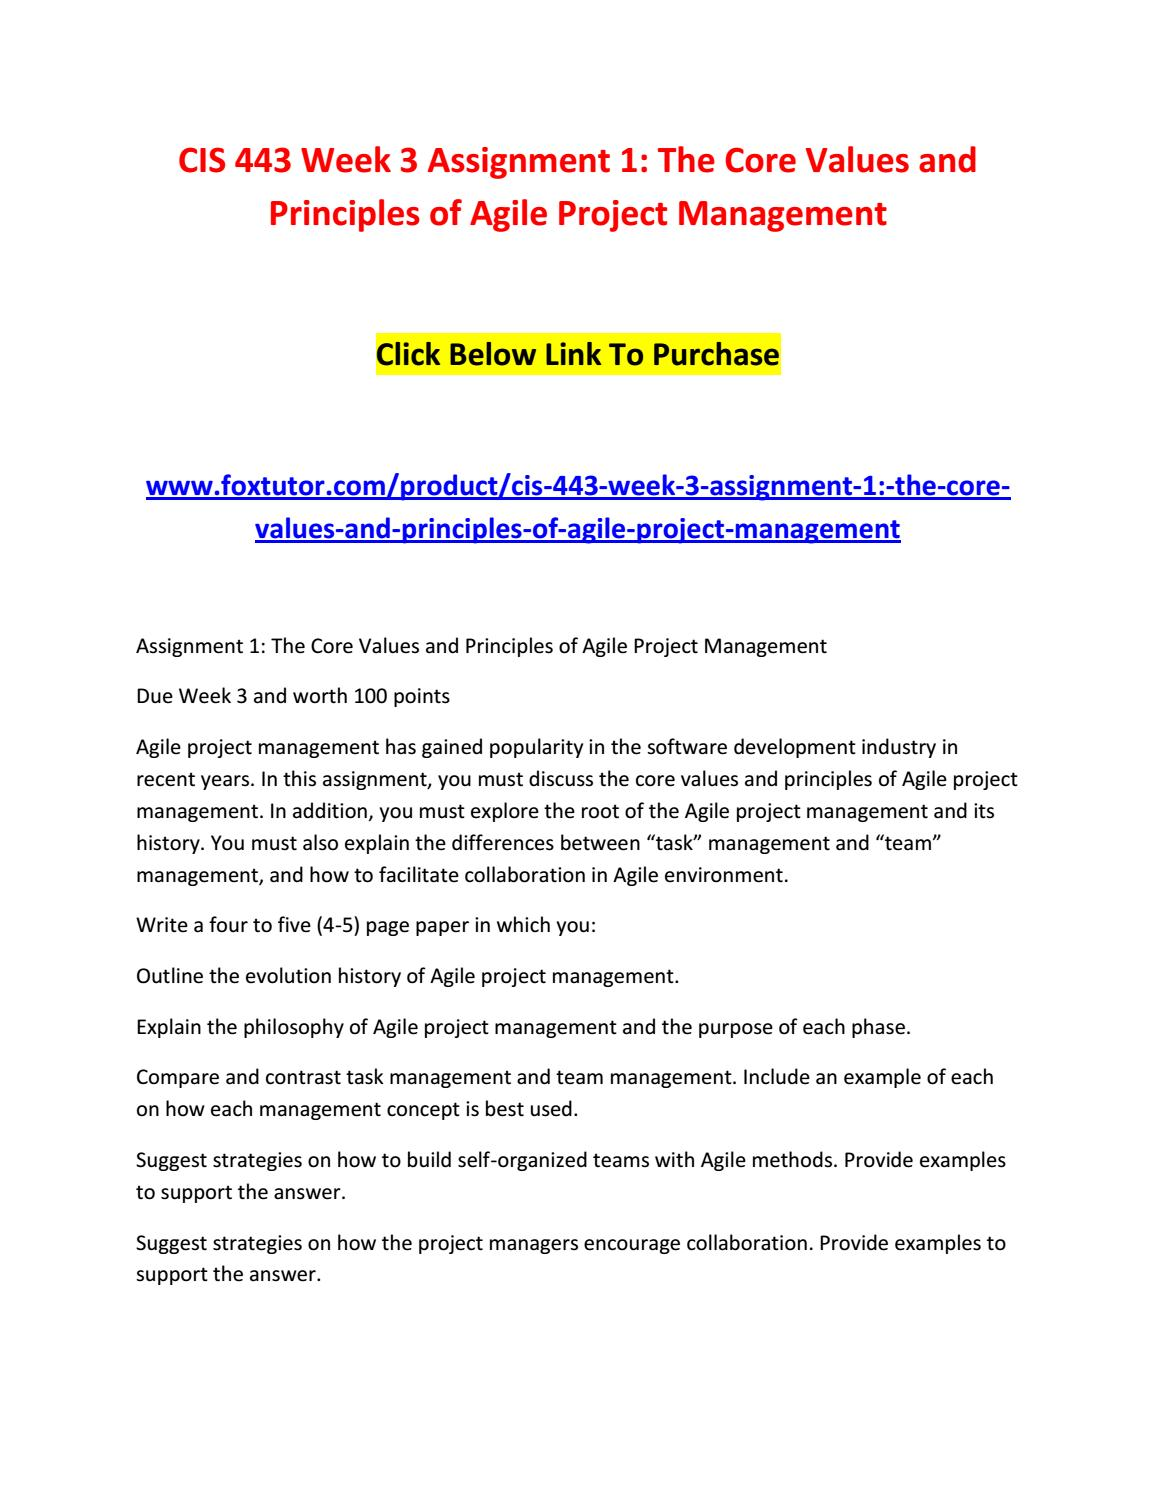 cis week assignment the core values and principles of  cis 443 week 3 assignment 1 the core values and principles of agile project management by cis443ft issuu